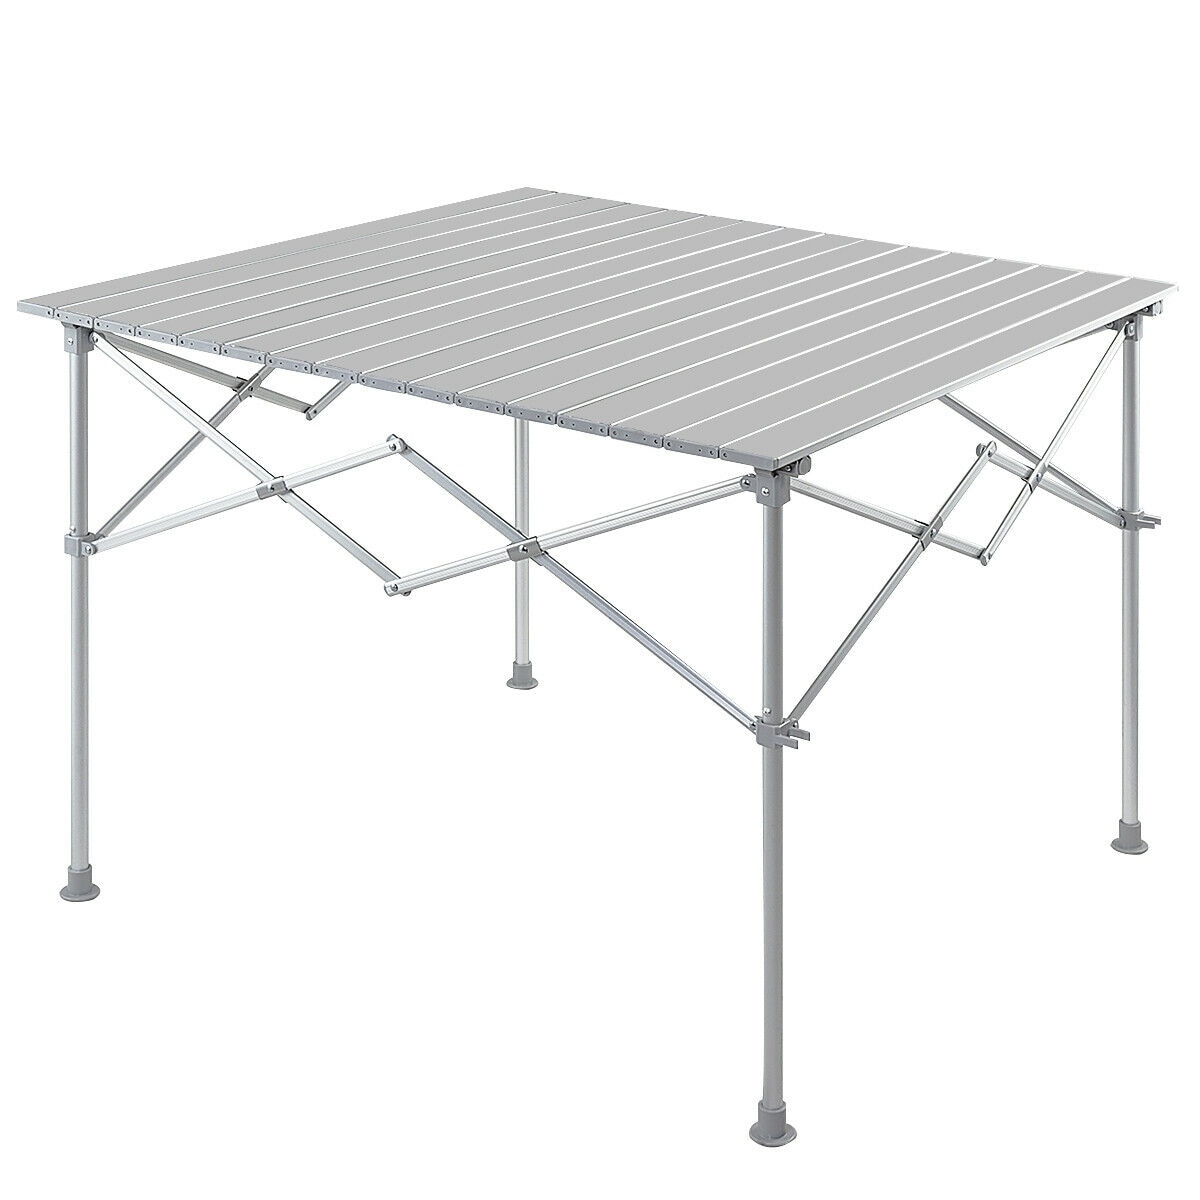 Folding Camping Table Lightweight Portable Outdoor Aluminium Frame Black